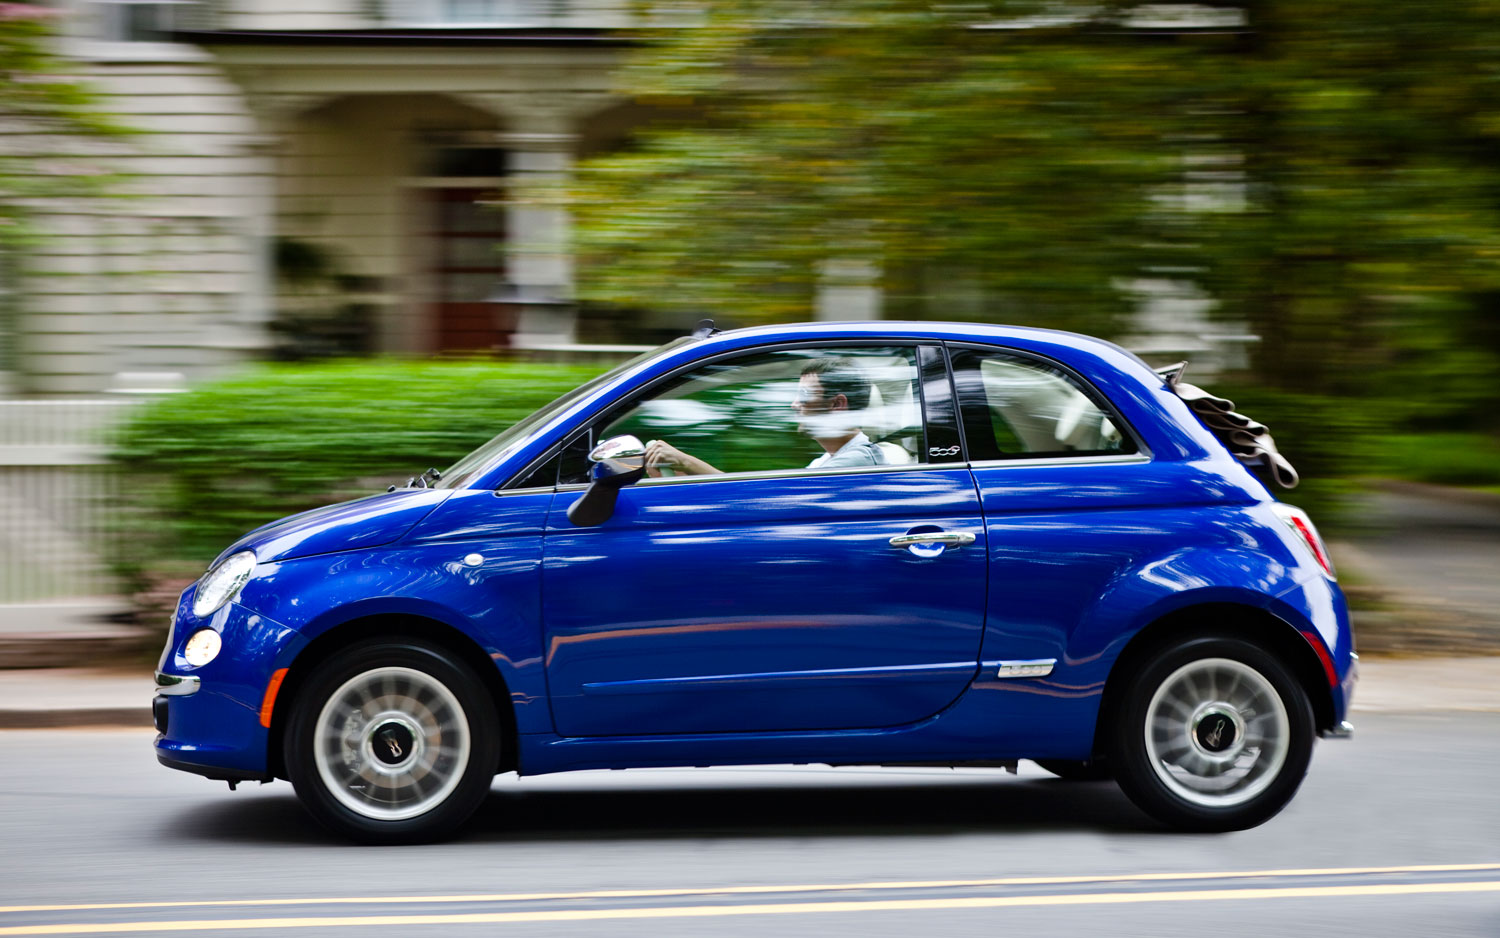 Fiat 500 Cabrio Blue Left Side View Motion